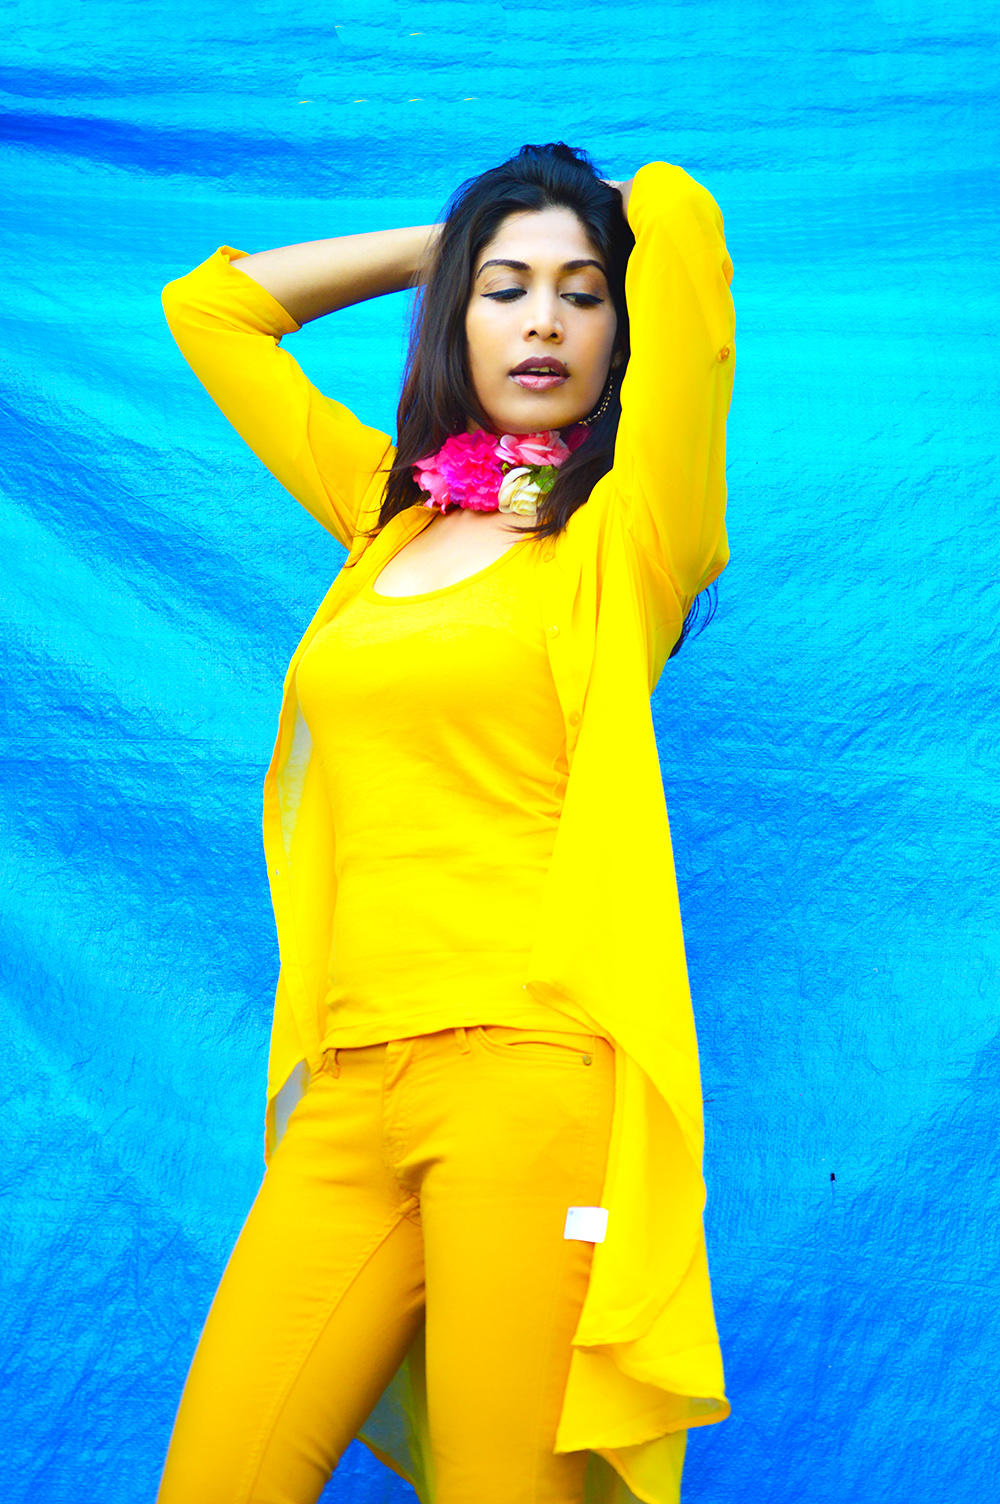 Fashion, Style, Street Style, Fashion Photography, Summer Fashion, Indian Fashion Blogger, Fashion Blogger, Yellow Shrug, Yellow Outfit, Summer Colours, Style Over Coffee, Beauty-8